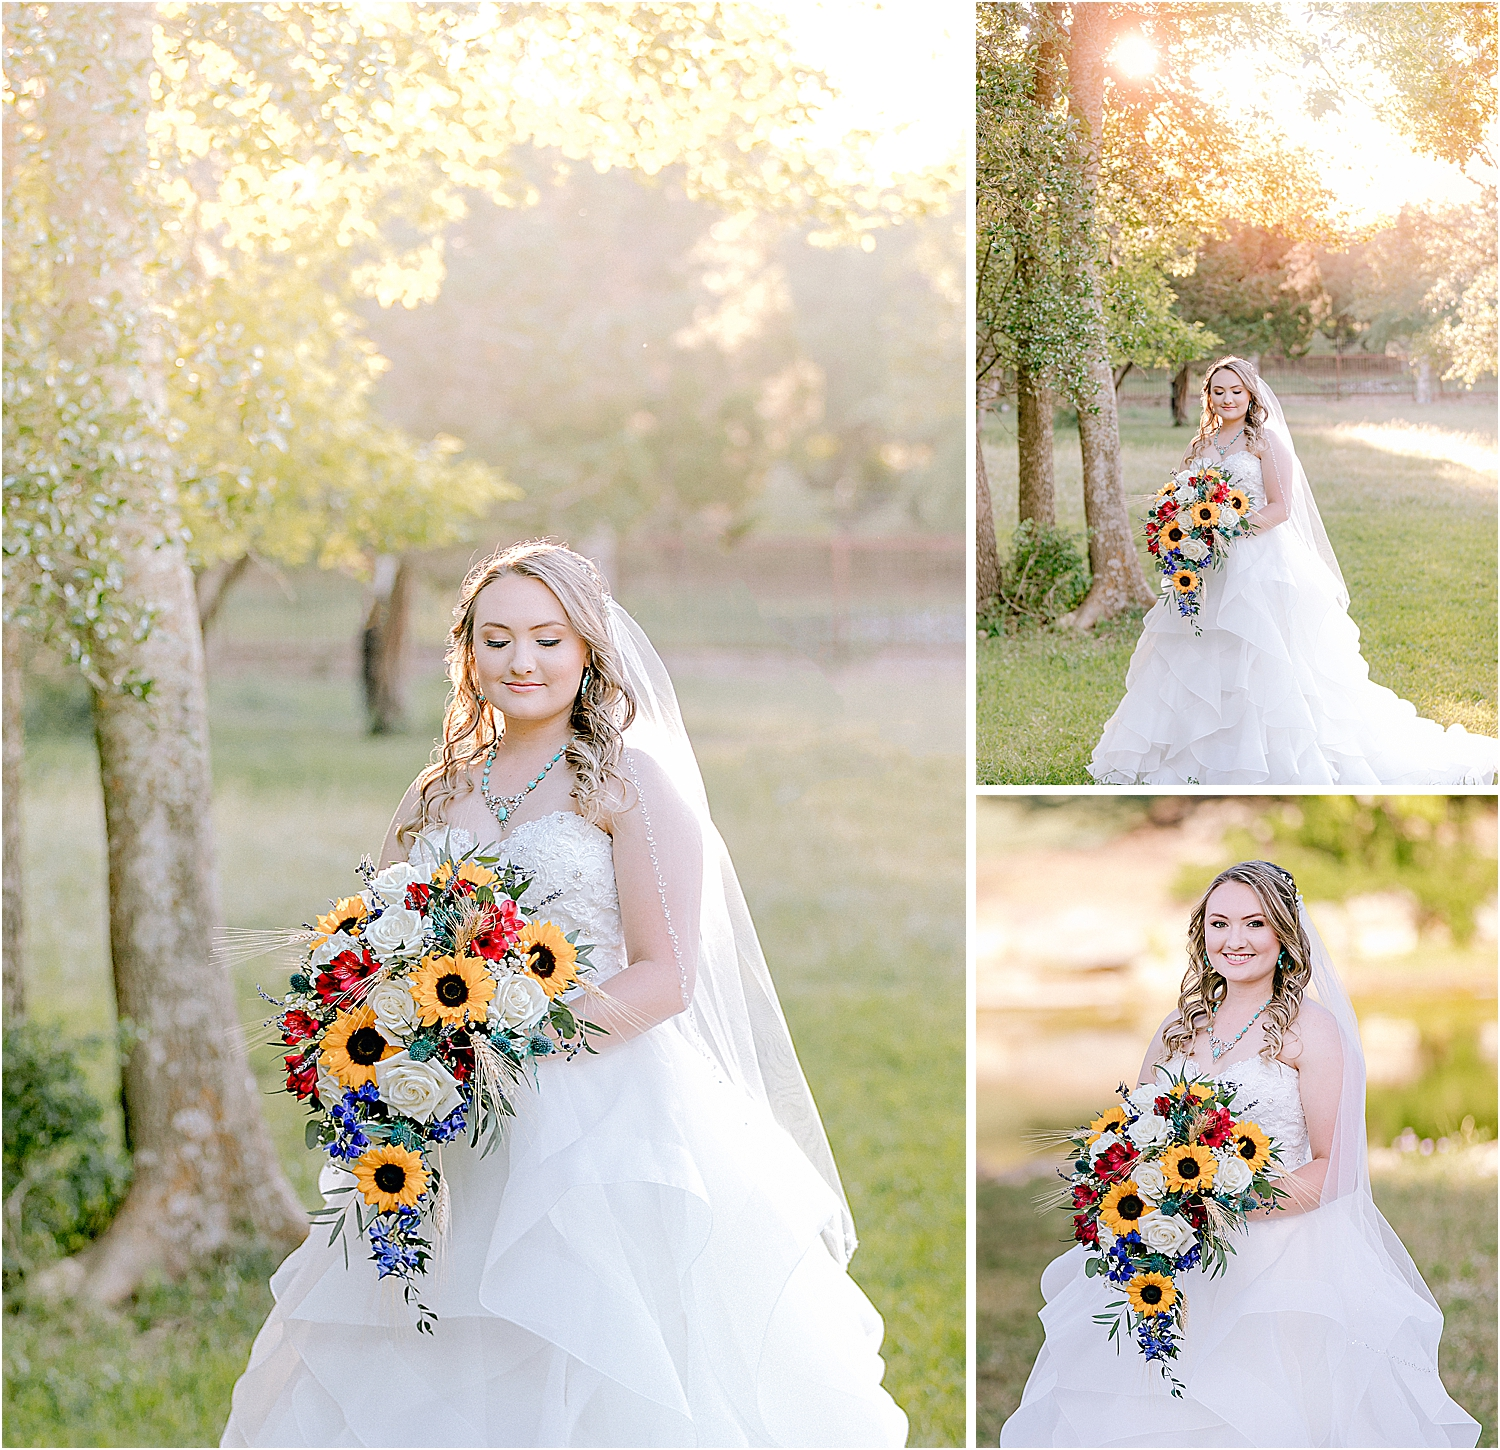 Carly-Barton-Photography-Texas-Bridals-Boerne-Rustic-Wedding-Photos_0003.jpg